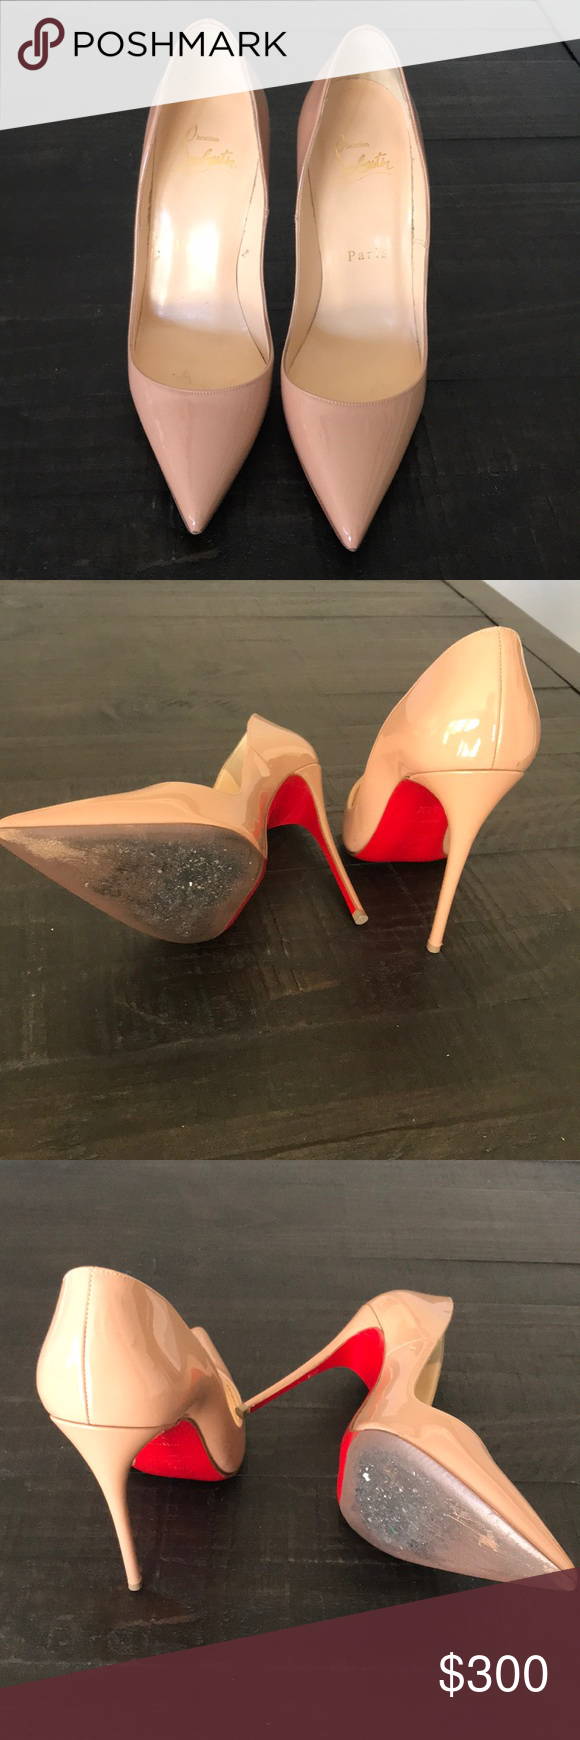 45cfac14ed0 heels refurbished red bottom from nordstrom rack Christian Louboutin ...